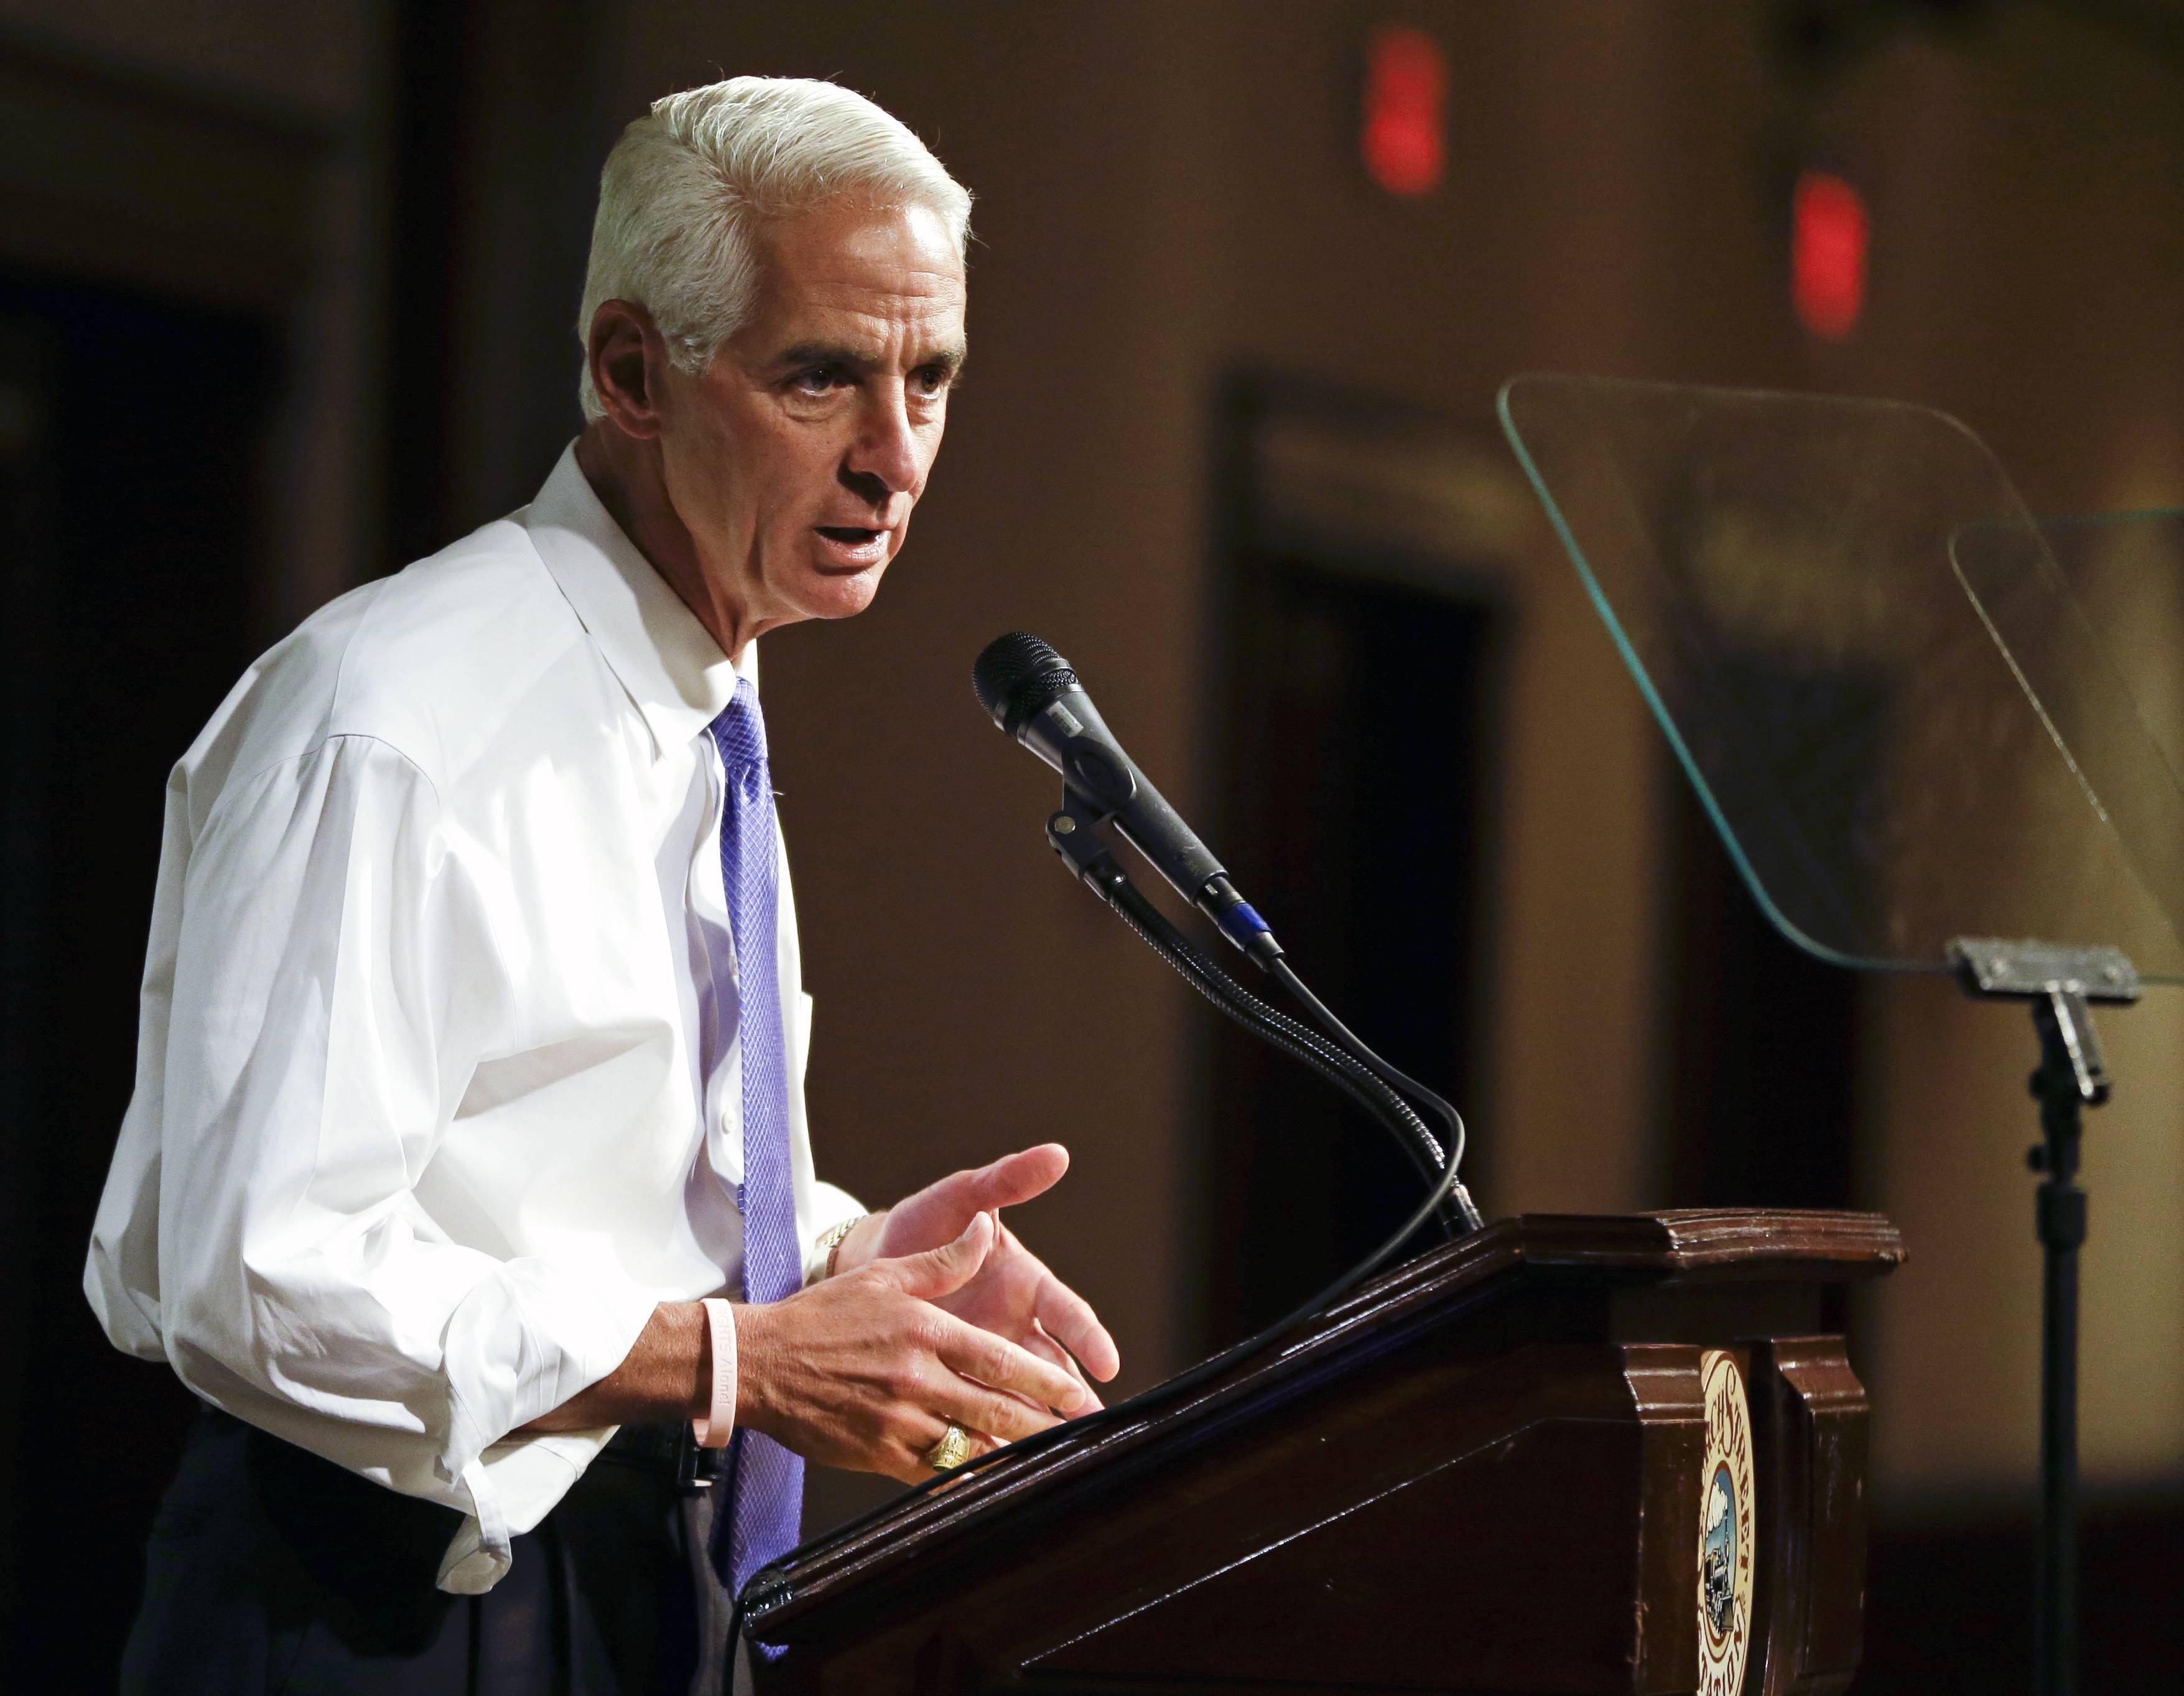 Florida Democratic gubernatorial candidate Charlie Crist campaigning in Orlando, Fla.